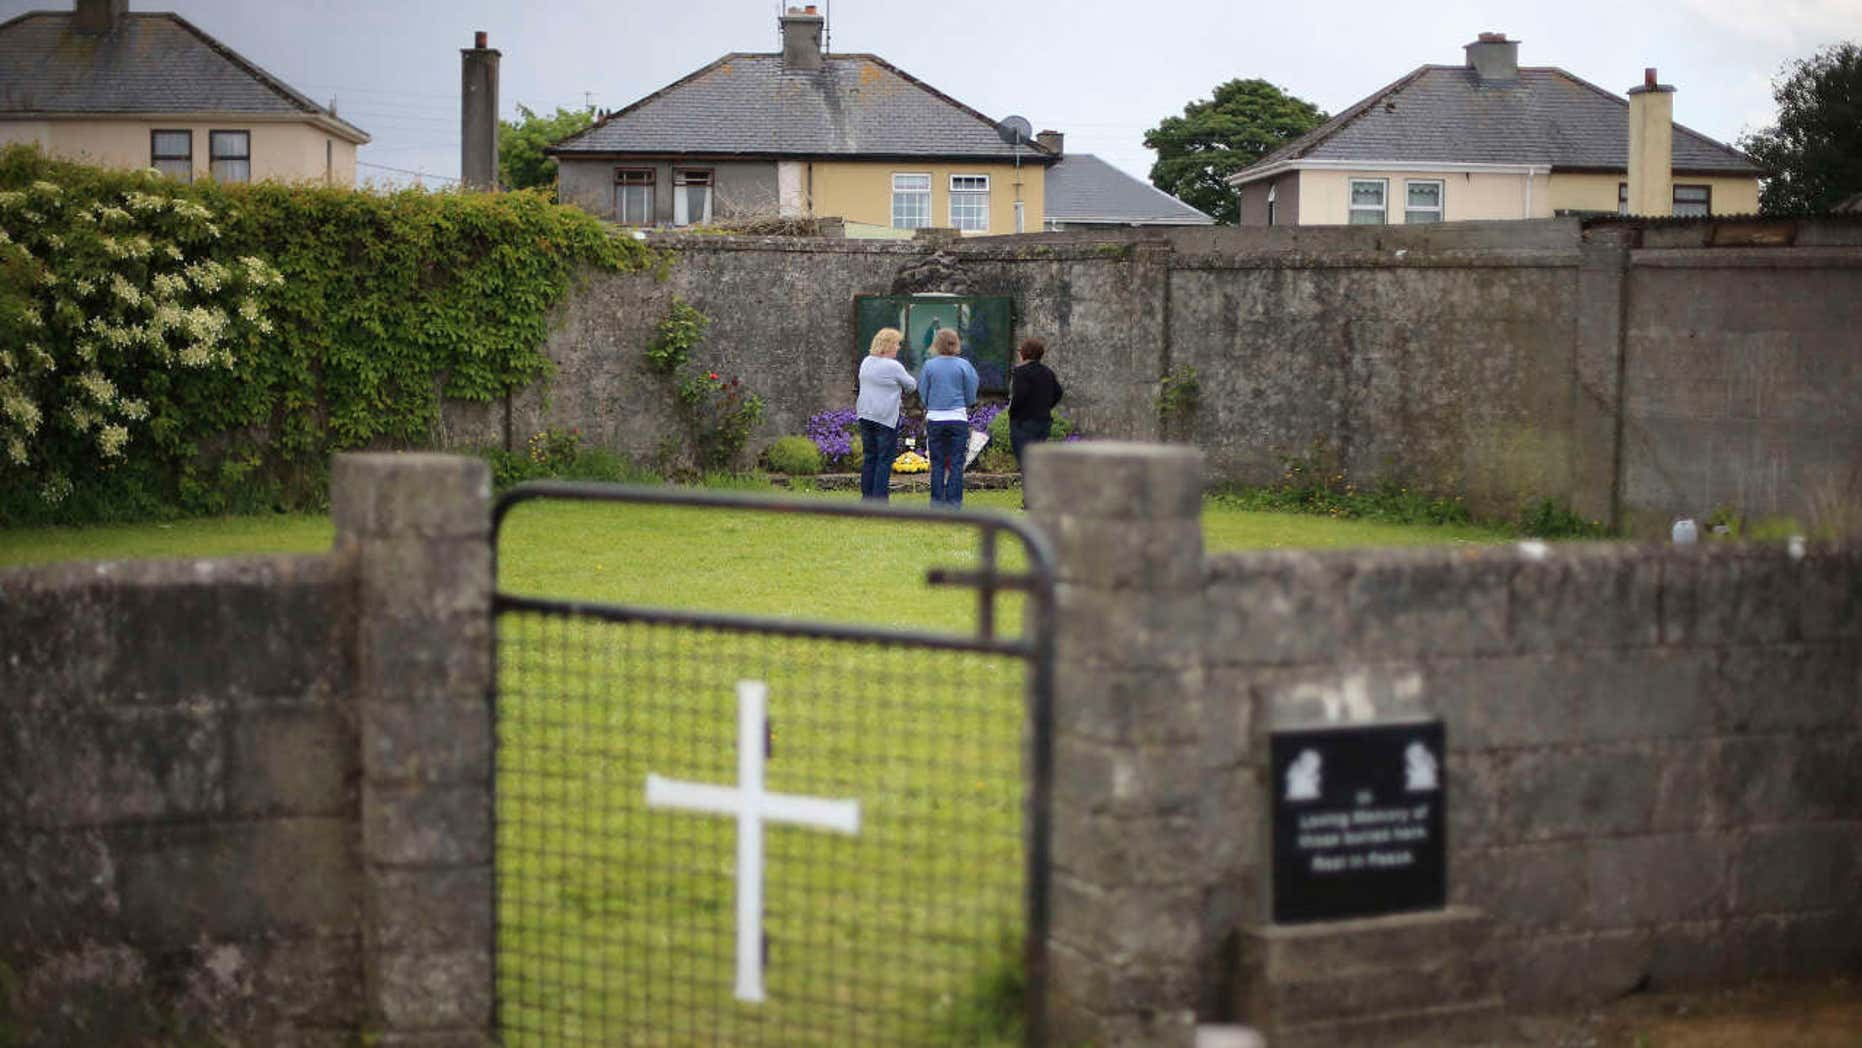 FILE In this June 7, 2014 file photo members of the public at the site of a mass grave for children who died in the Tuam mother and baby home, in Tuam, County Galway.